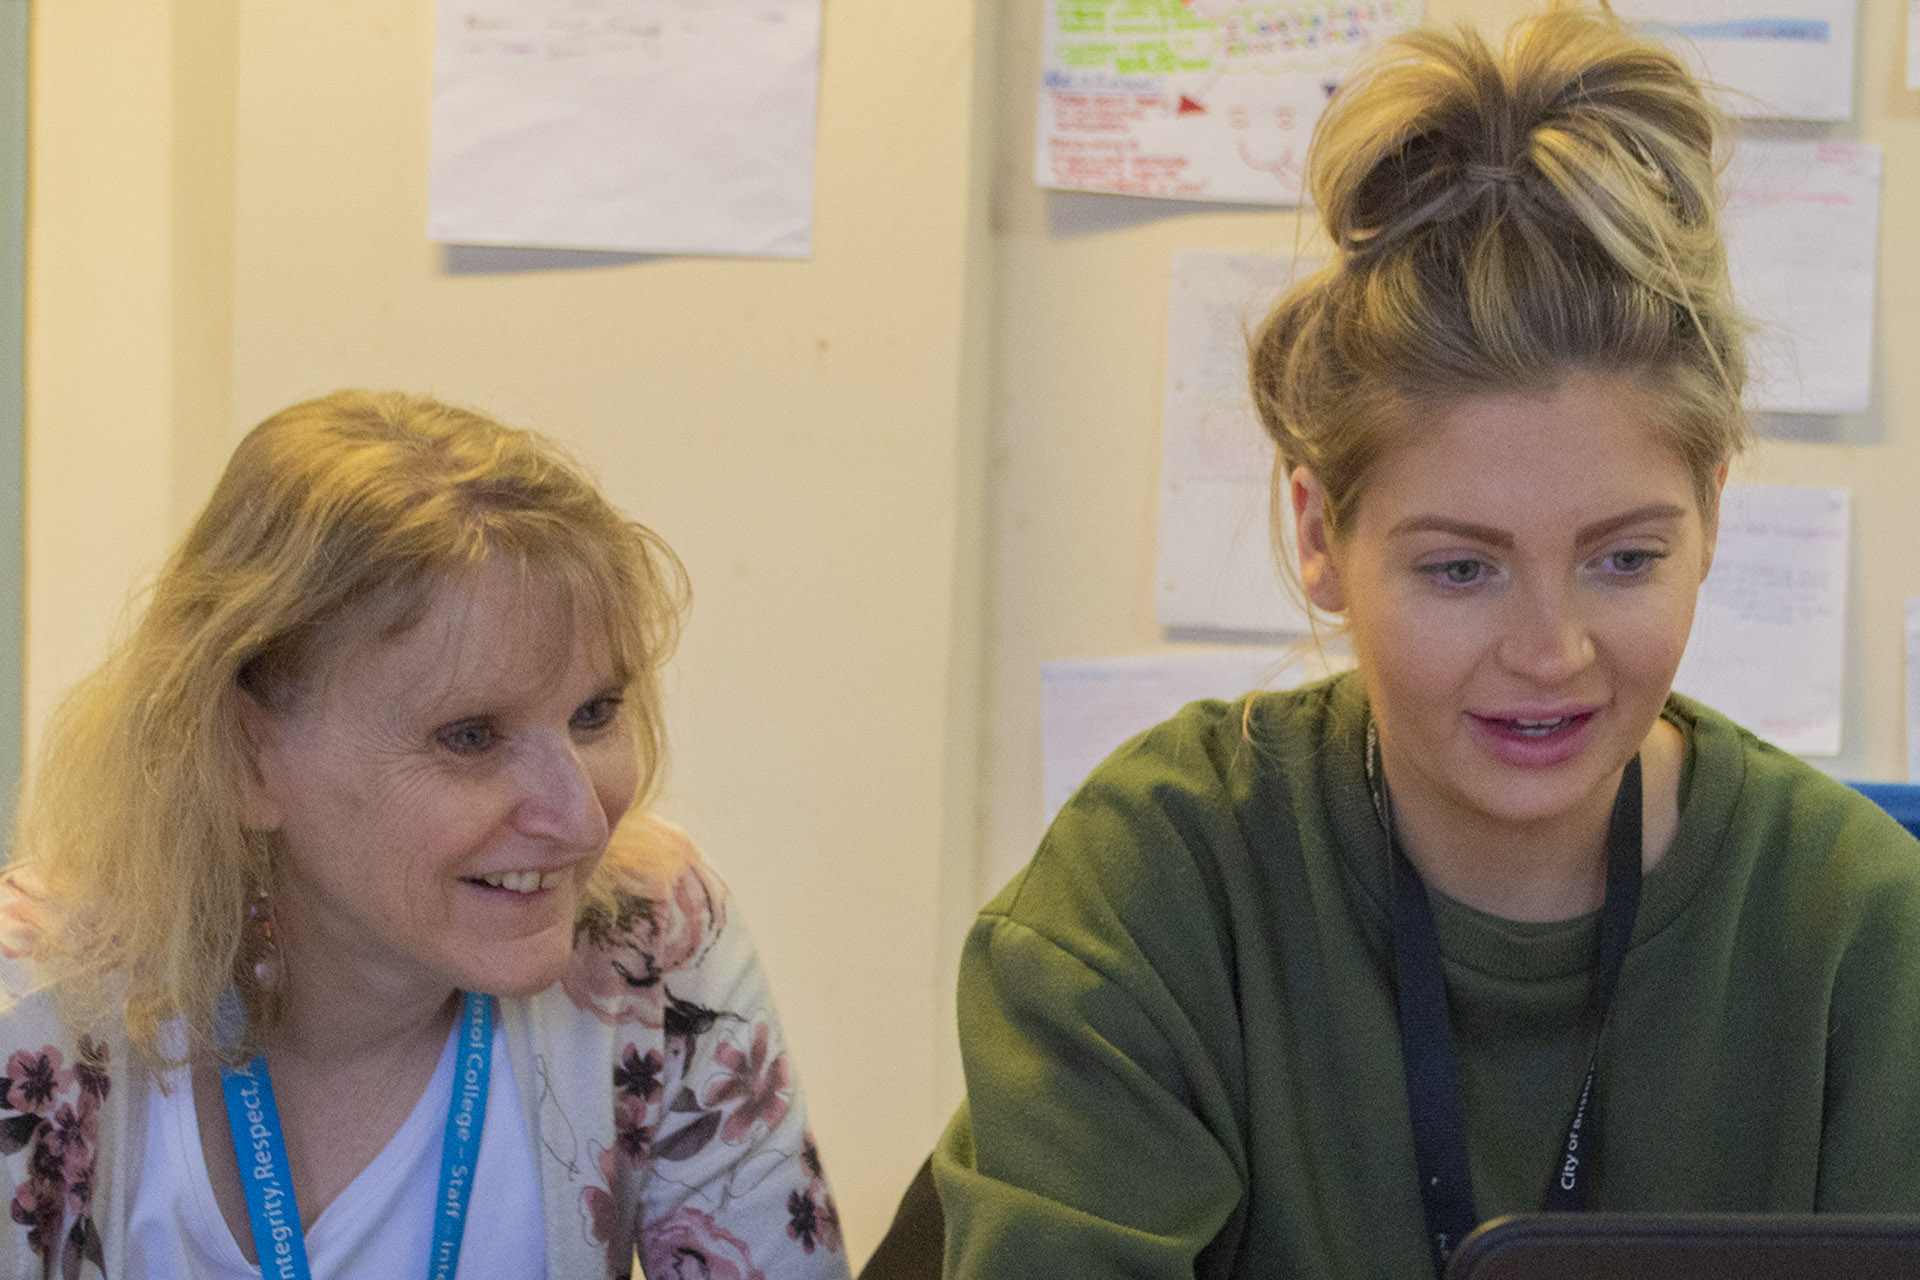 Learning Support - Student and tutor